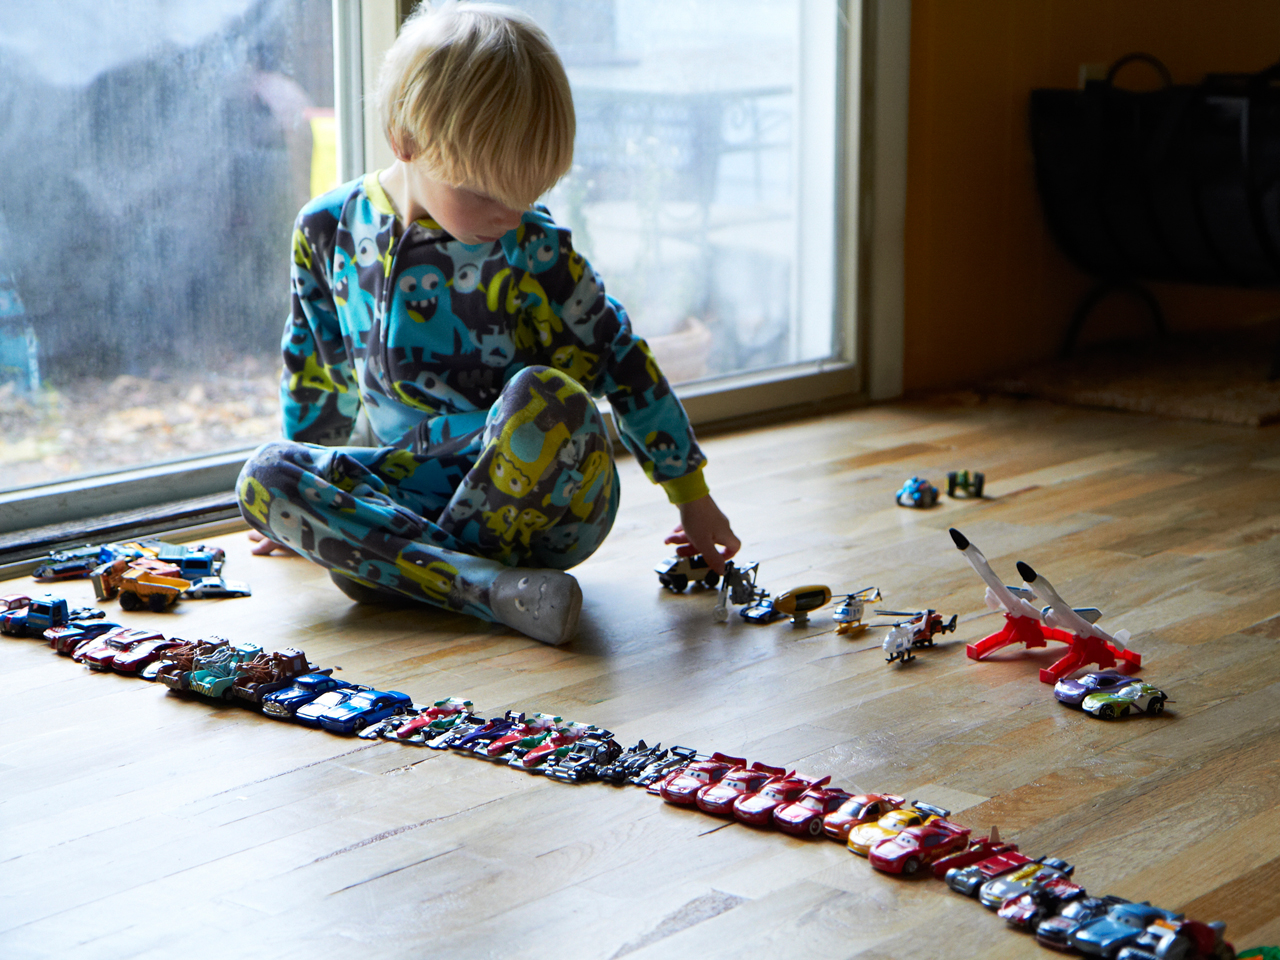 Mattel Thinks Moms Need Help Playing With Hot Wheels